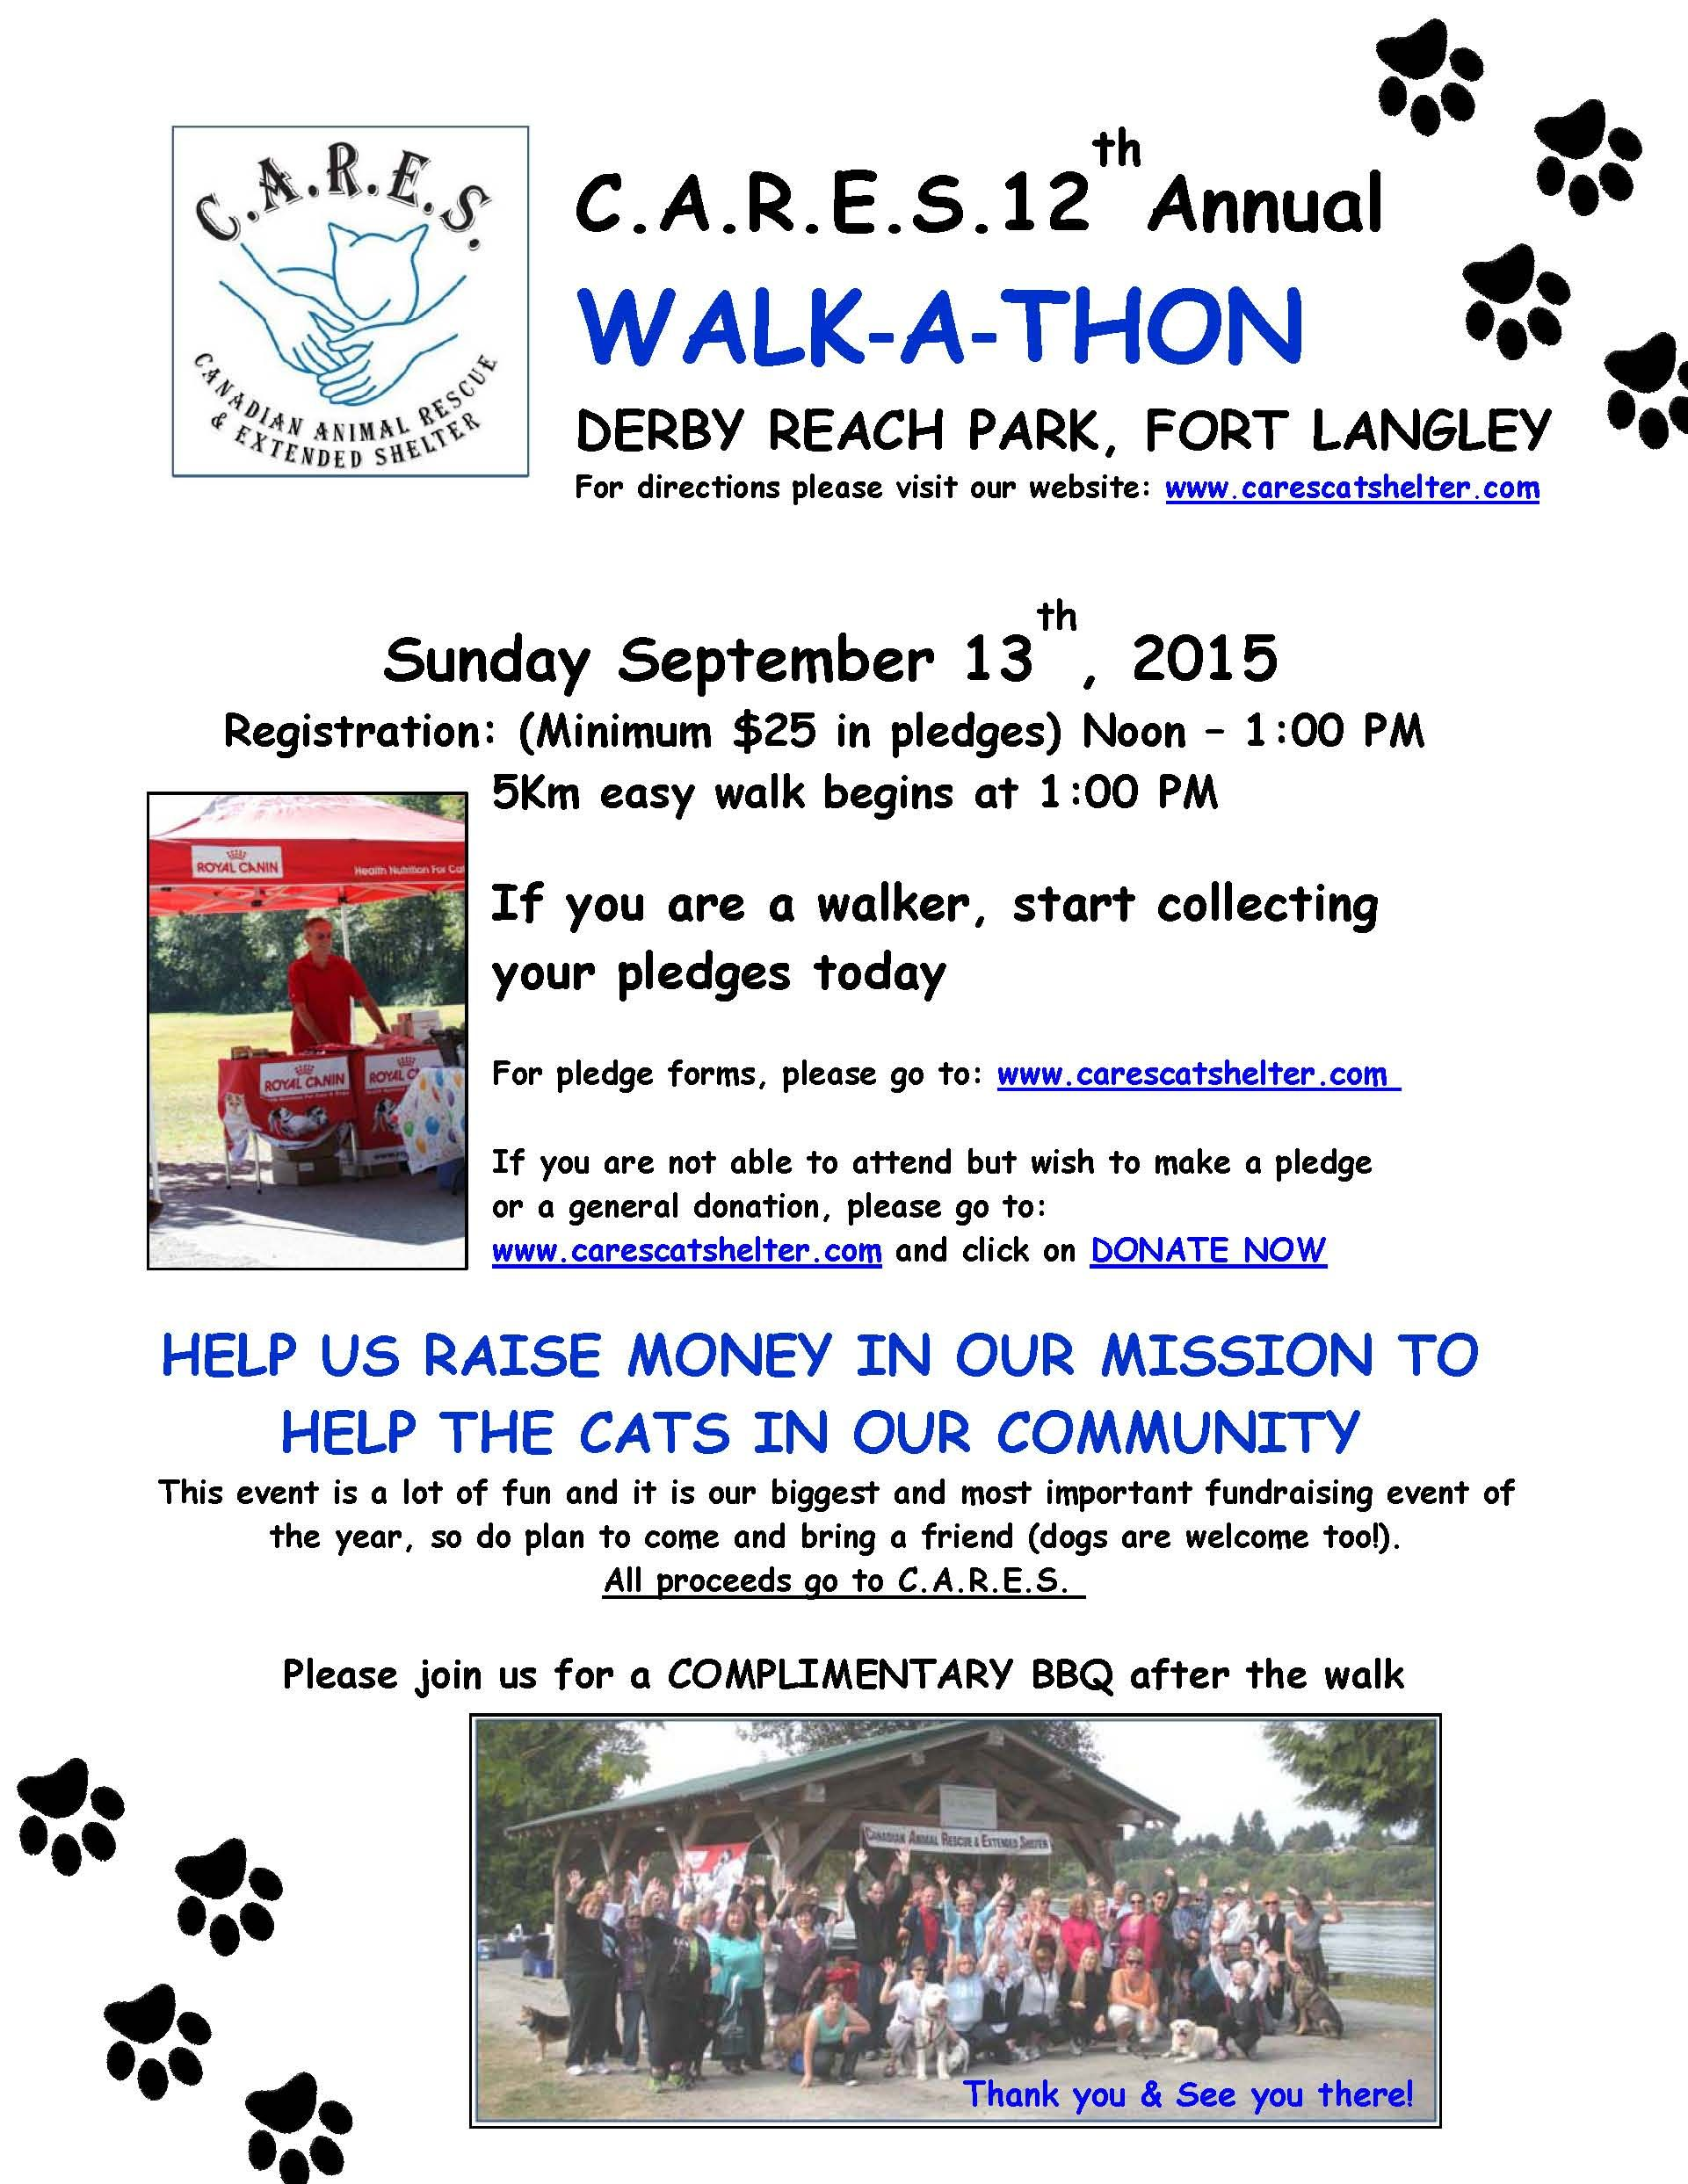 printable walk a thon pledge form continue with the details at the image link